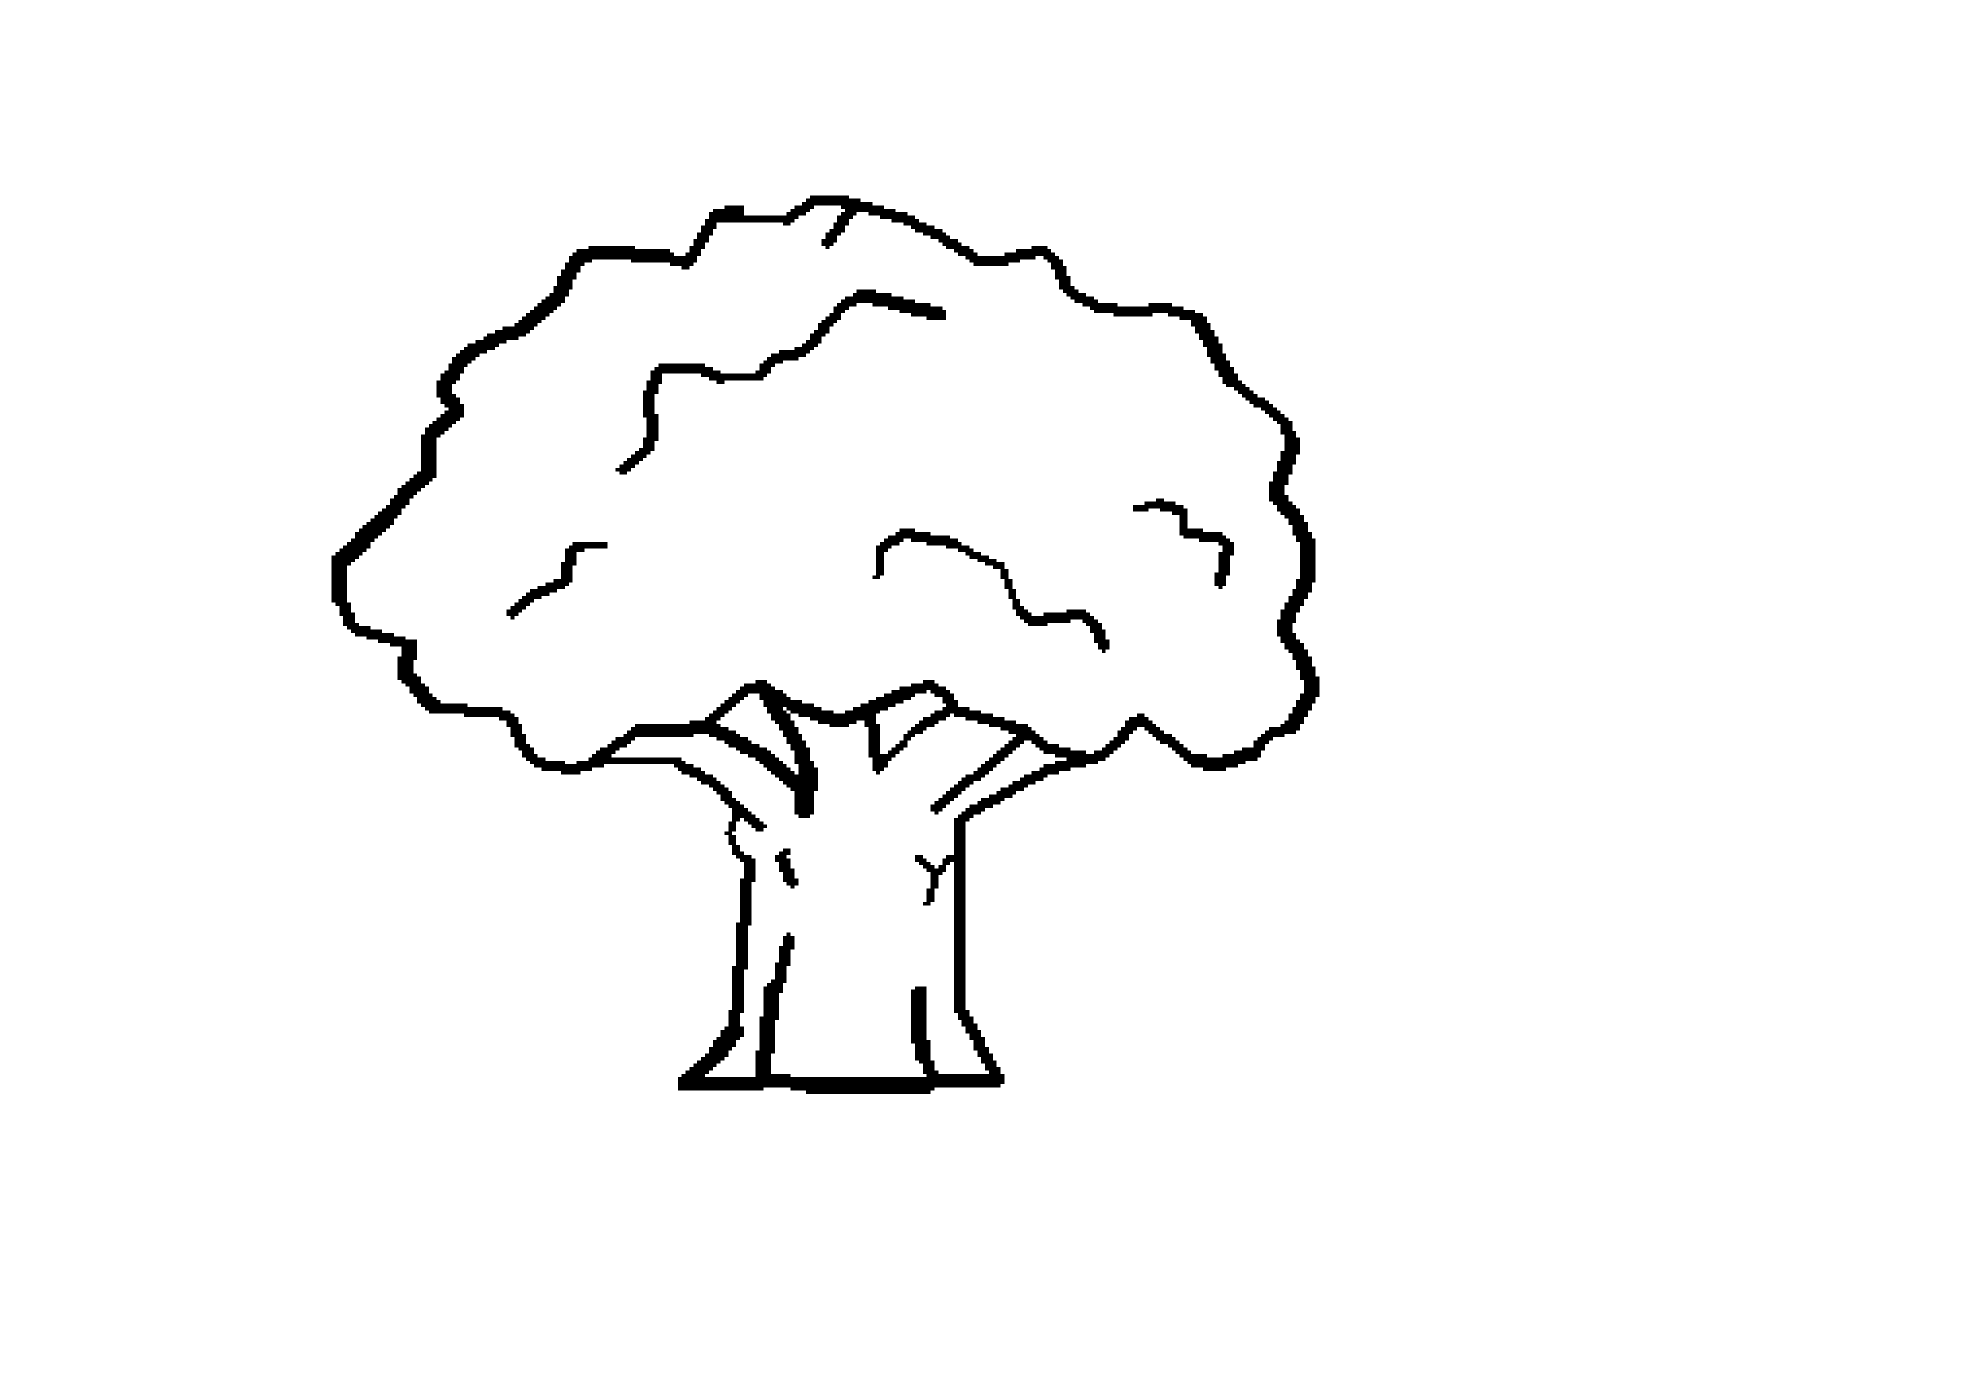 Line Art Black And White : Tree clipart black and white best